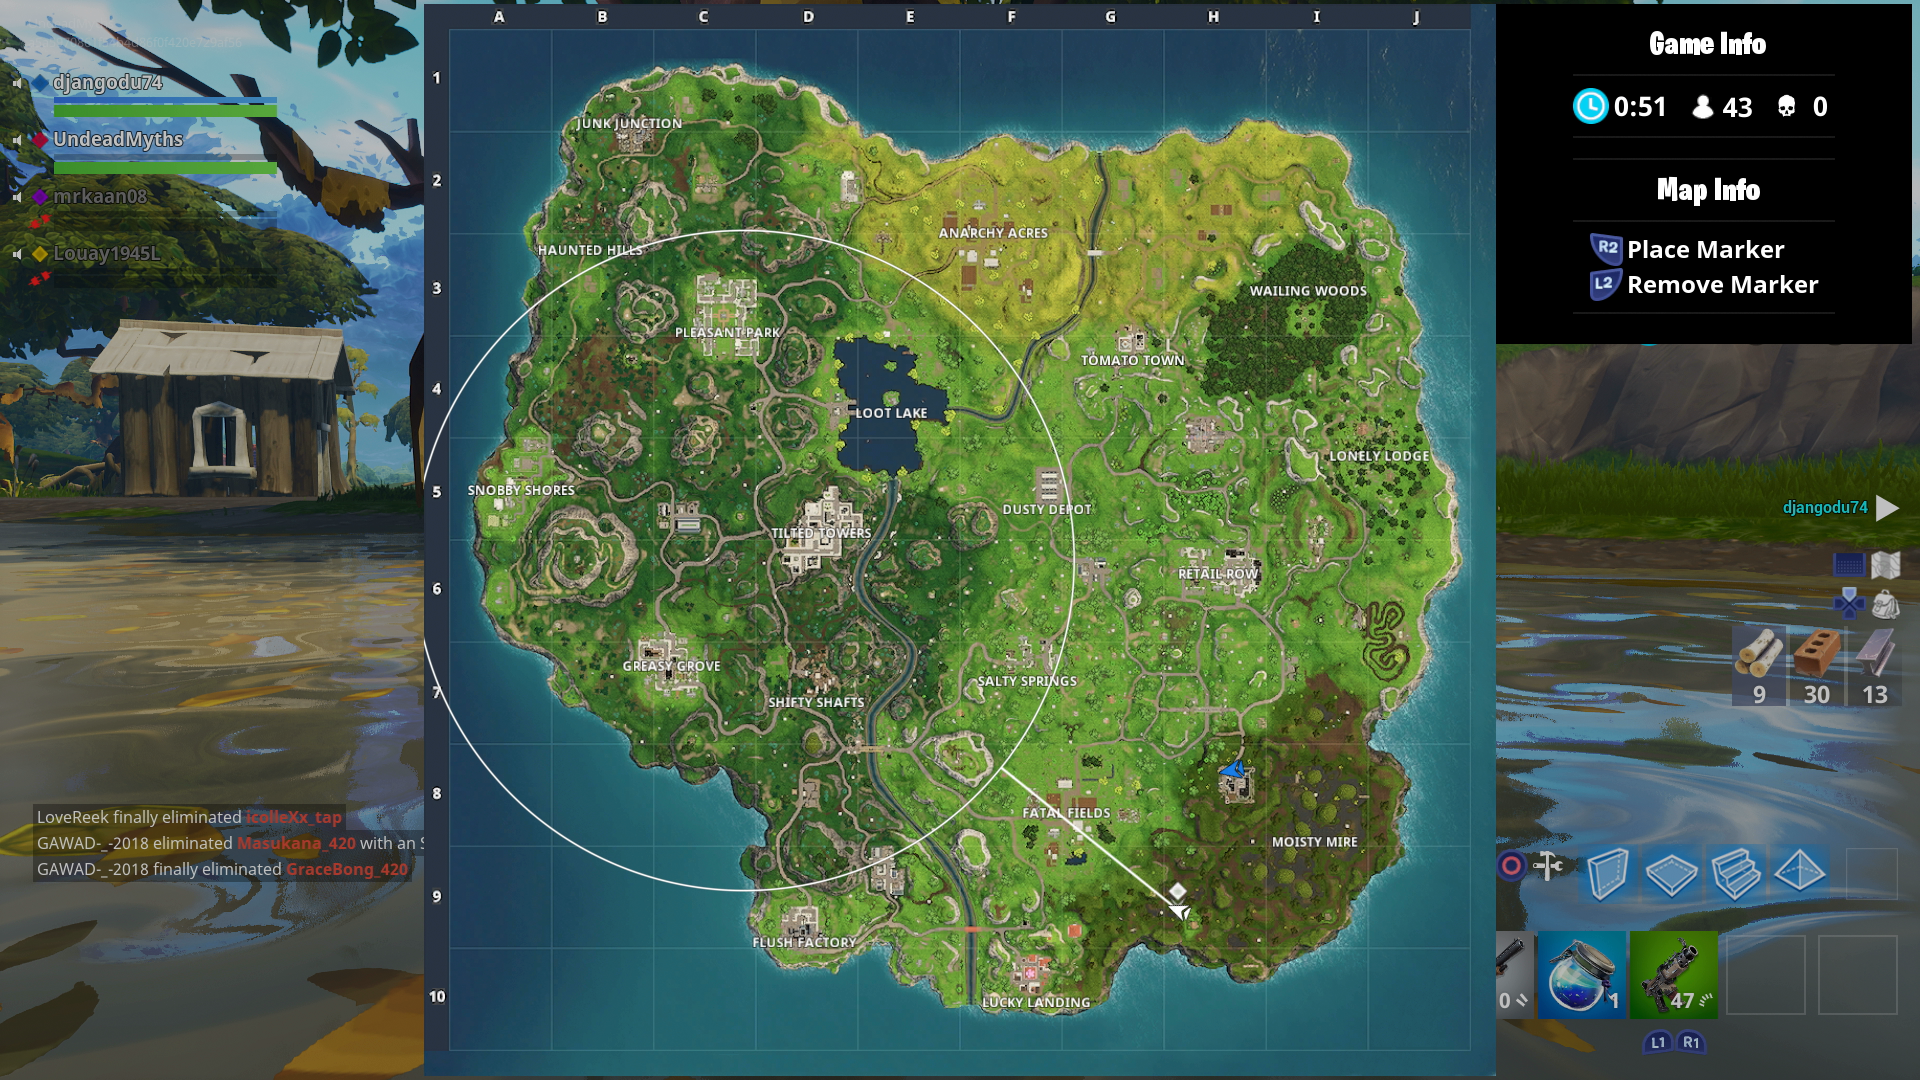 Where To Search Between Vehicle Tower Rock Sculpture And Circle Of